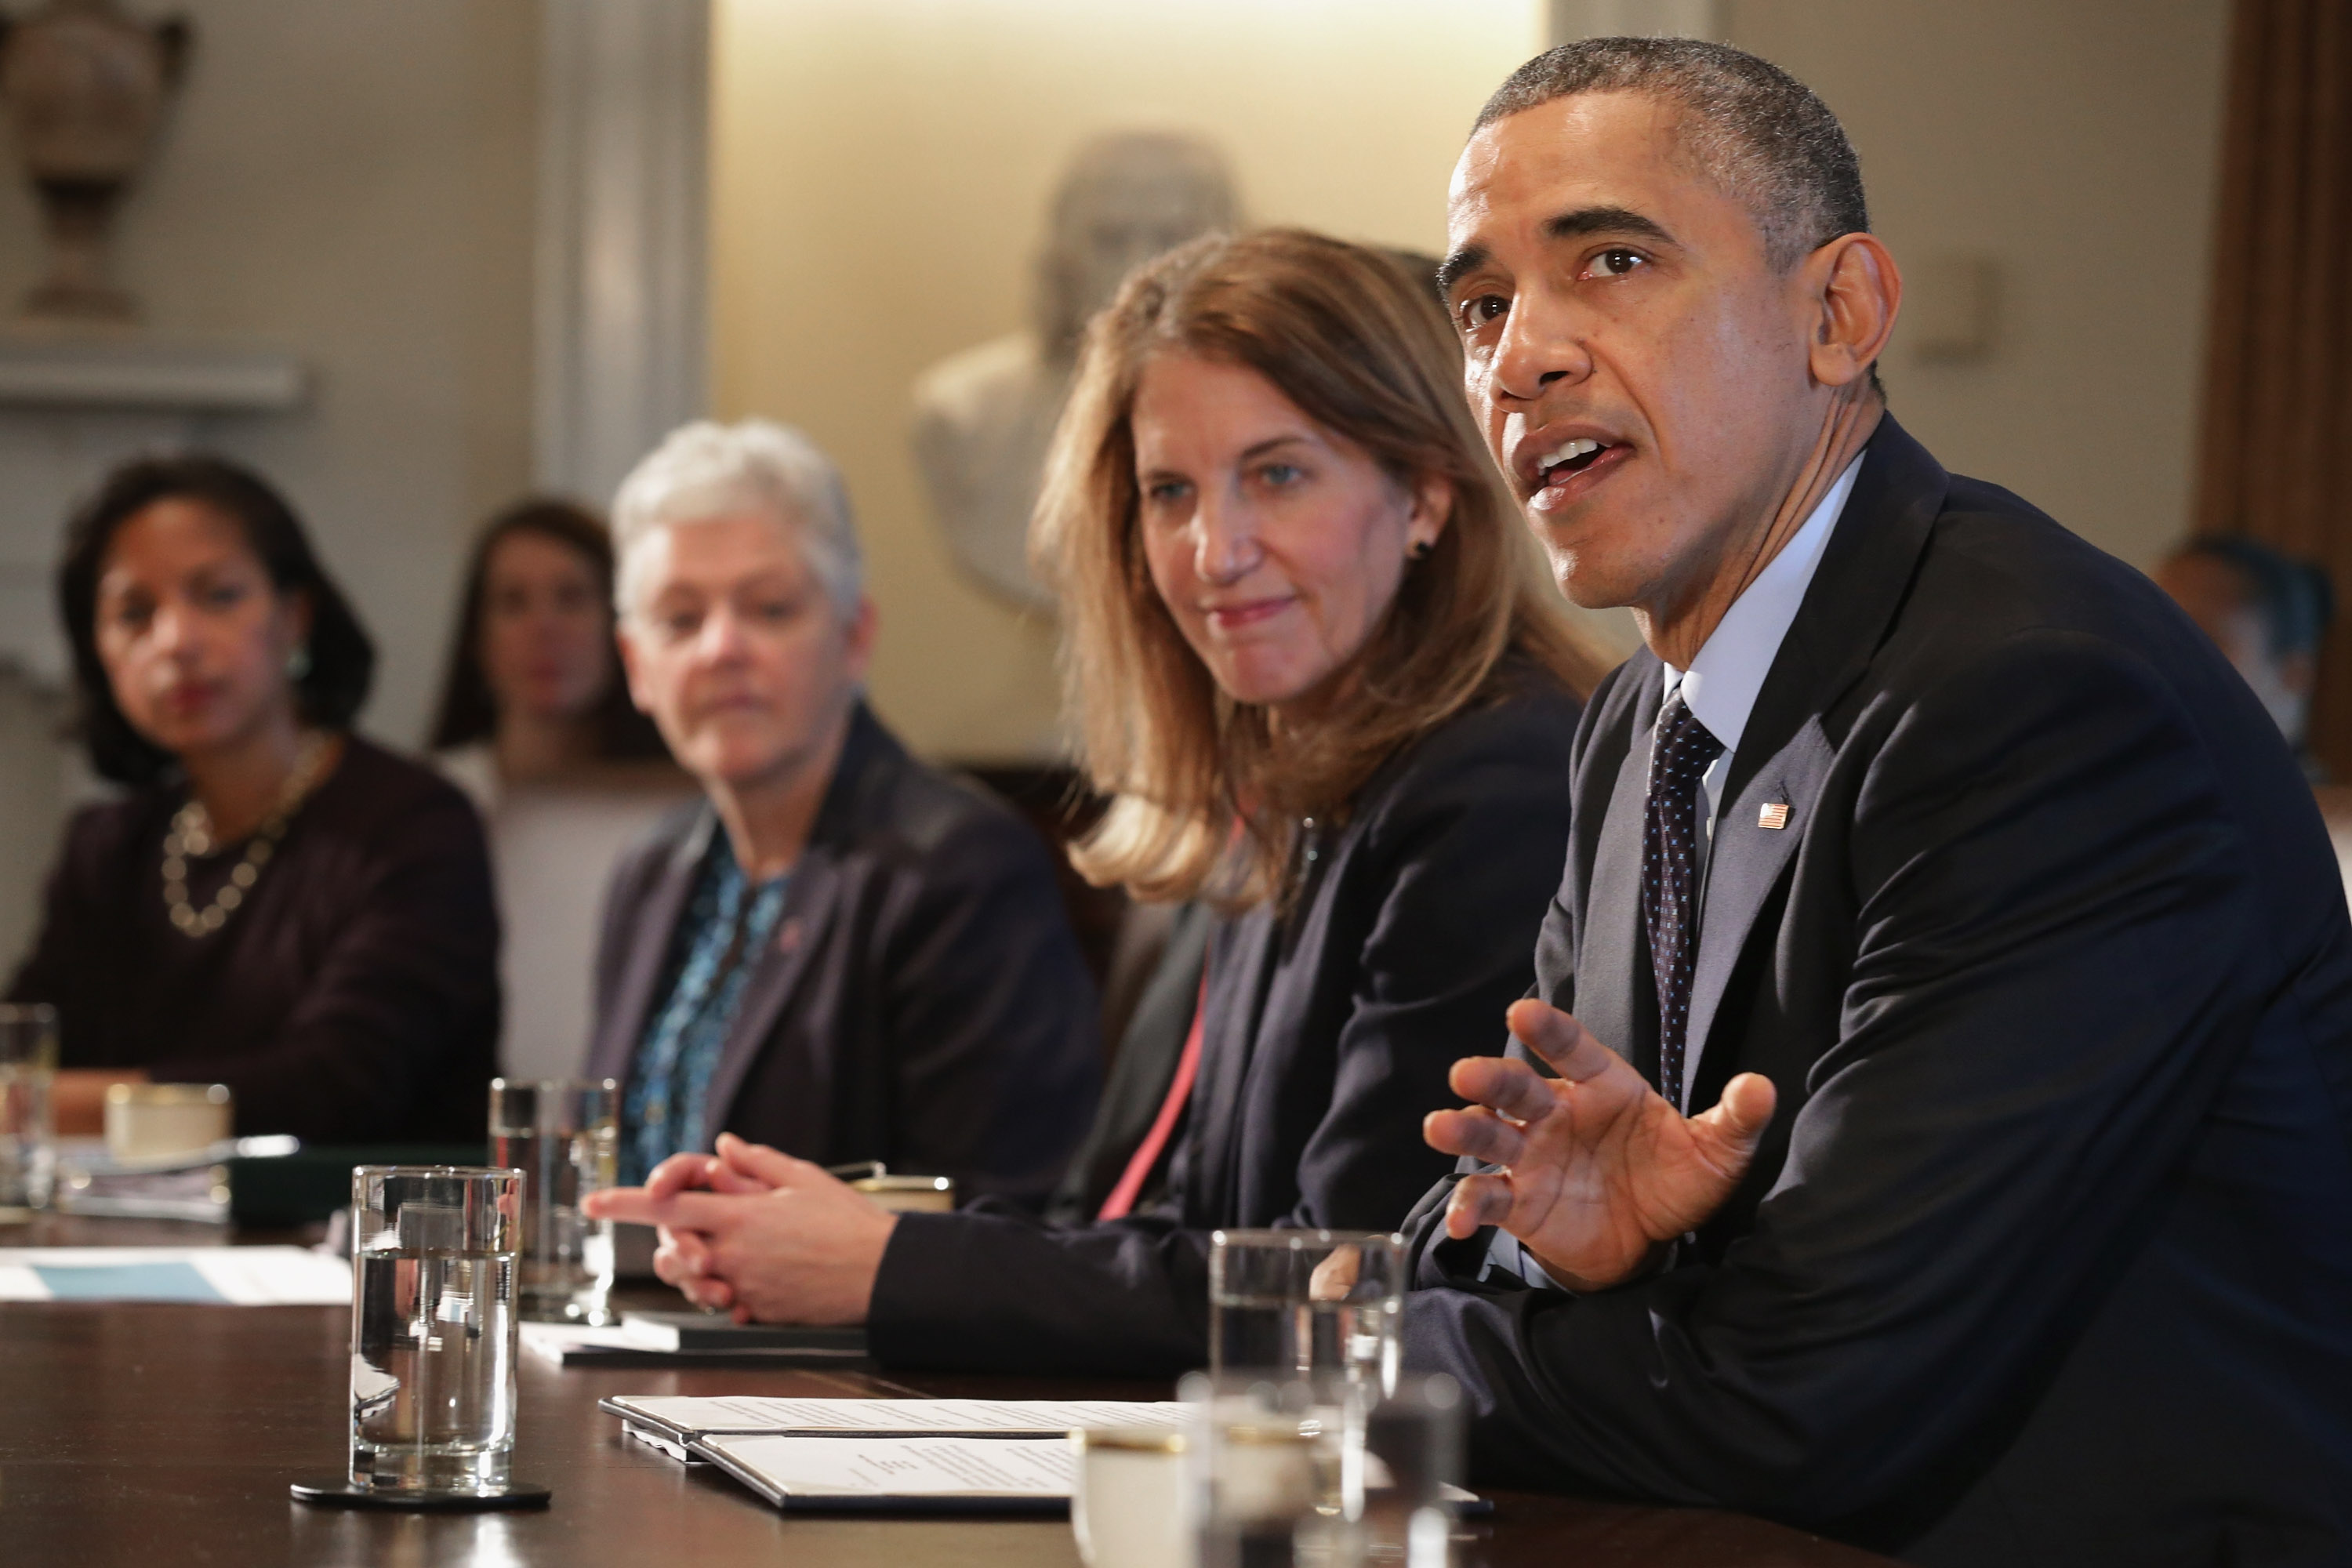 The amazing tool that women in the White House used to fight gender bias